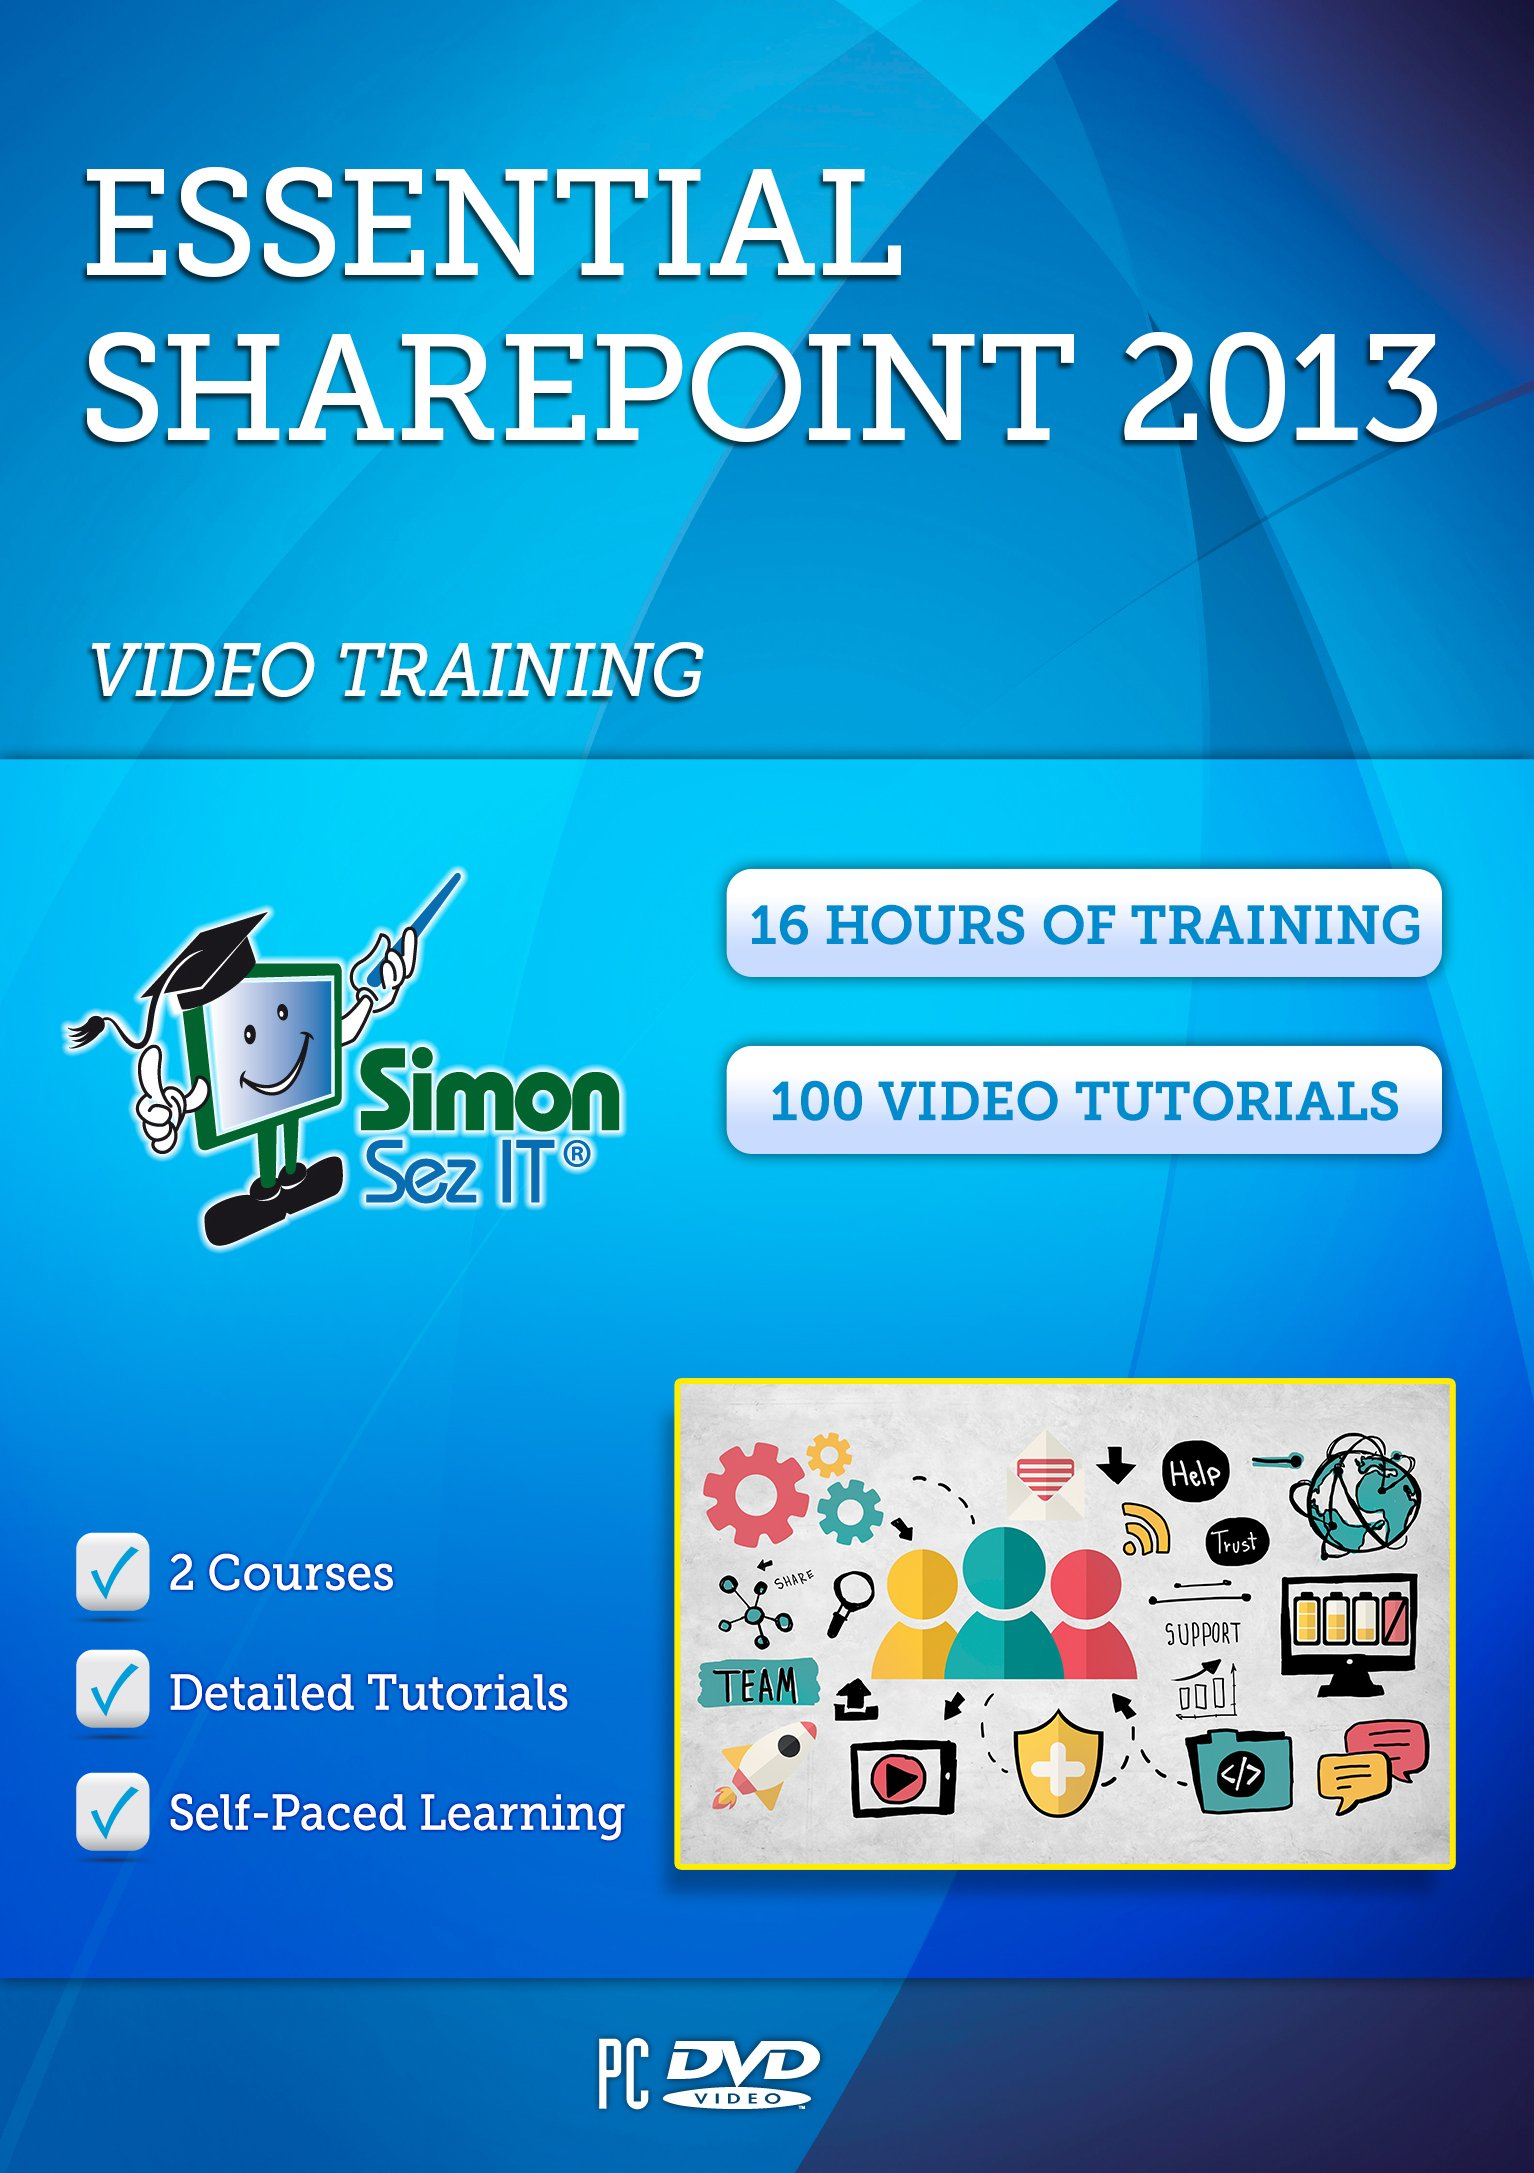 Learn SharePoint 2013 Training Tutorials - 16 Hours of SharePoint 2013 Training by Simon Sez IT